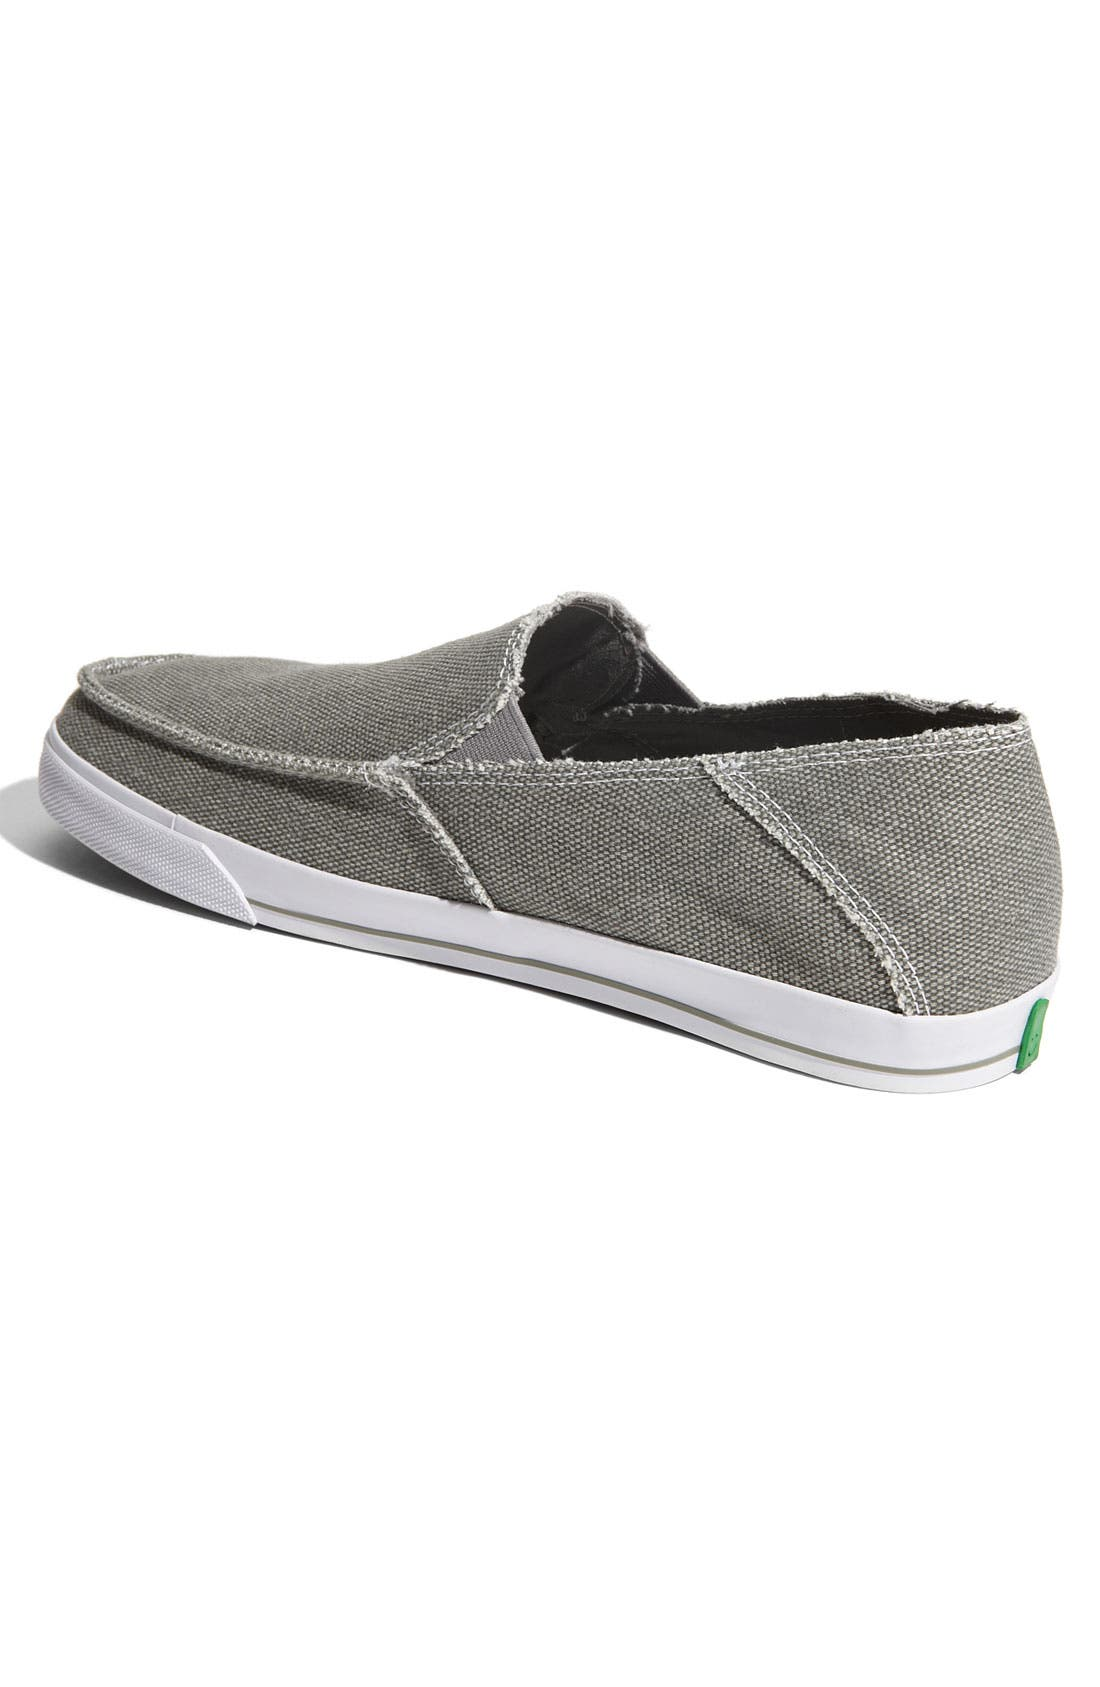 Alternate Image 3  - Sanuk 'Standard' Slip-On